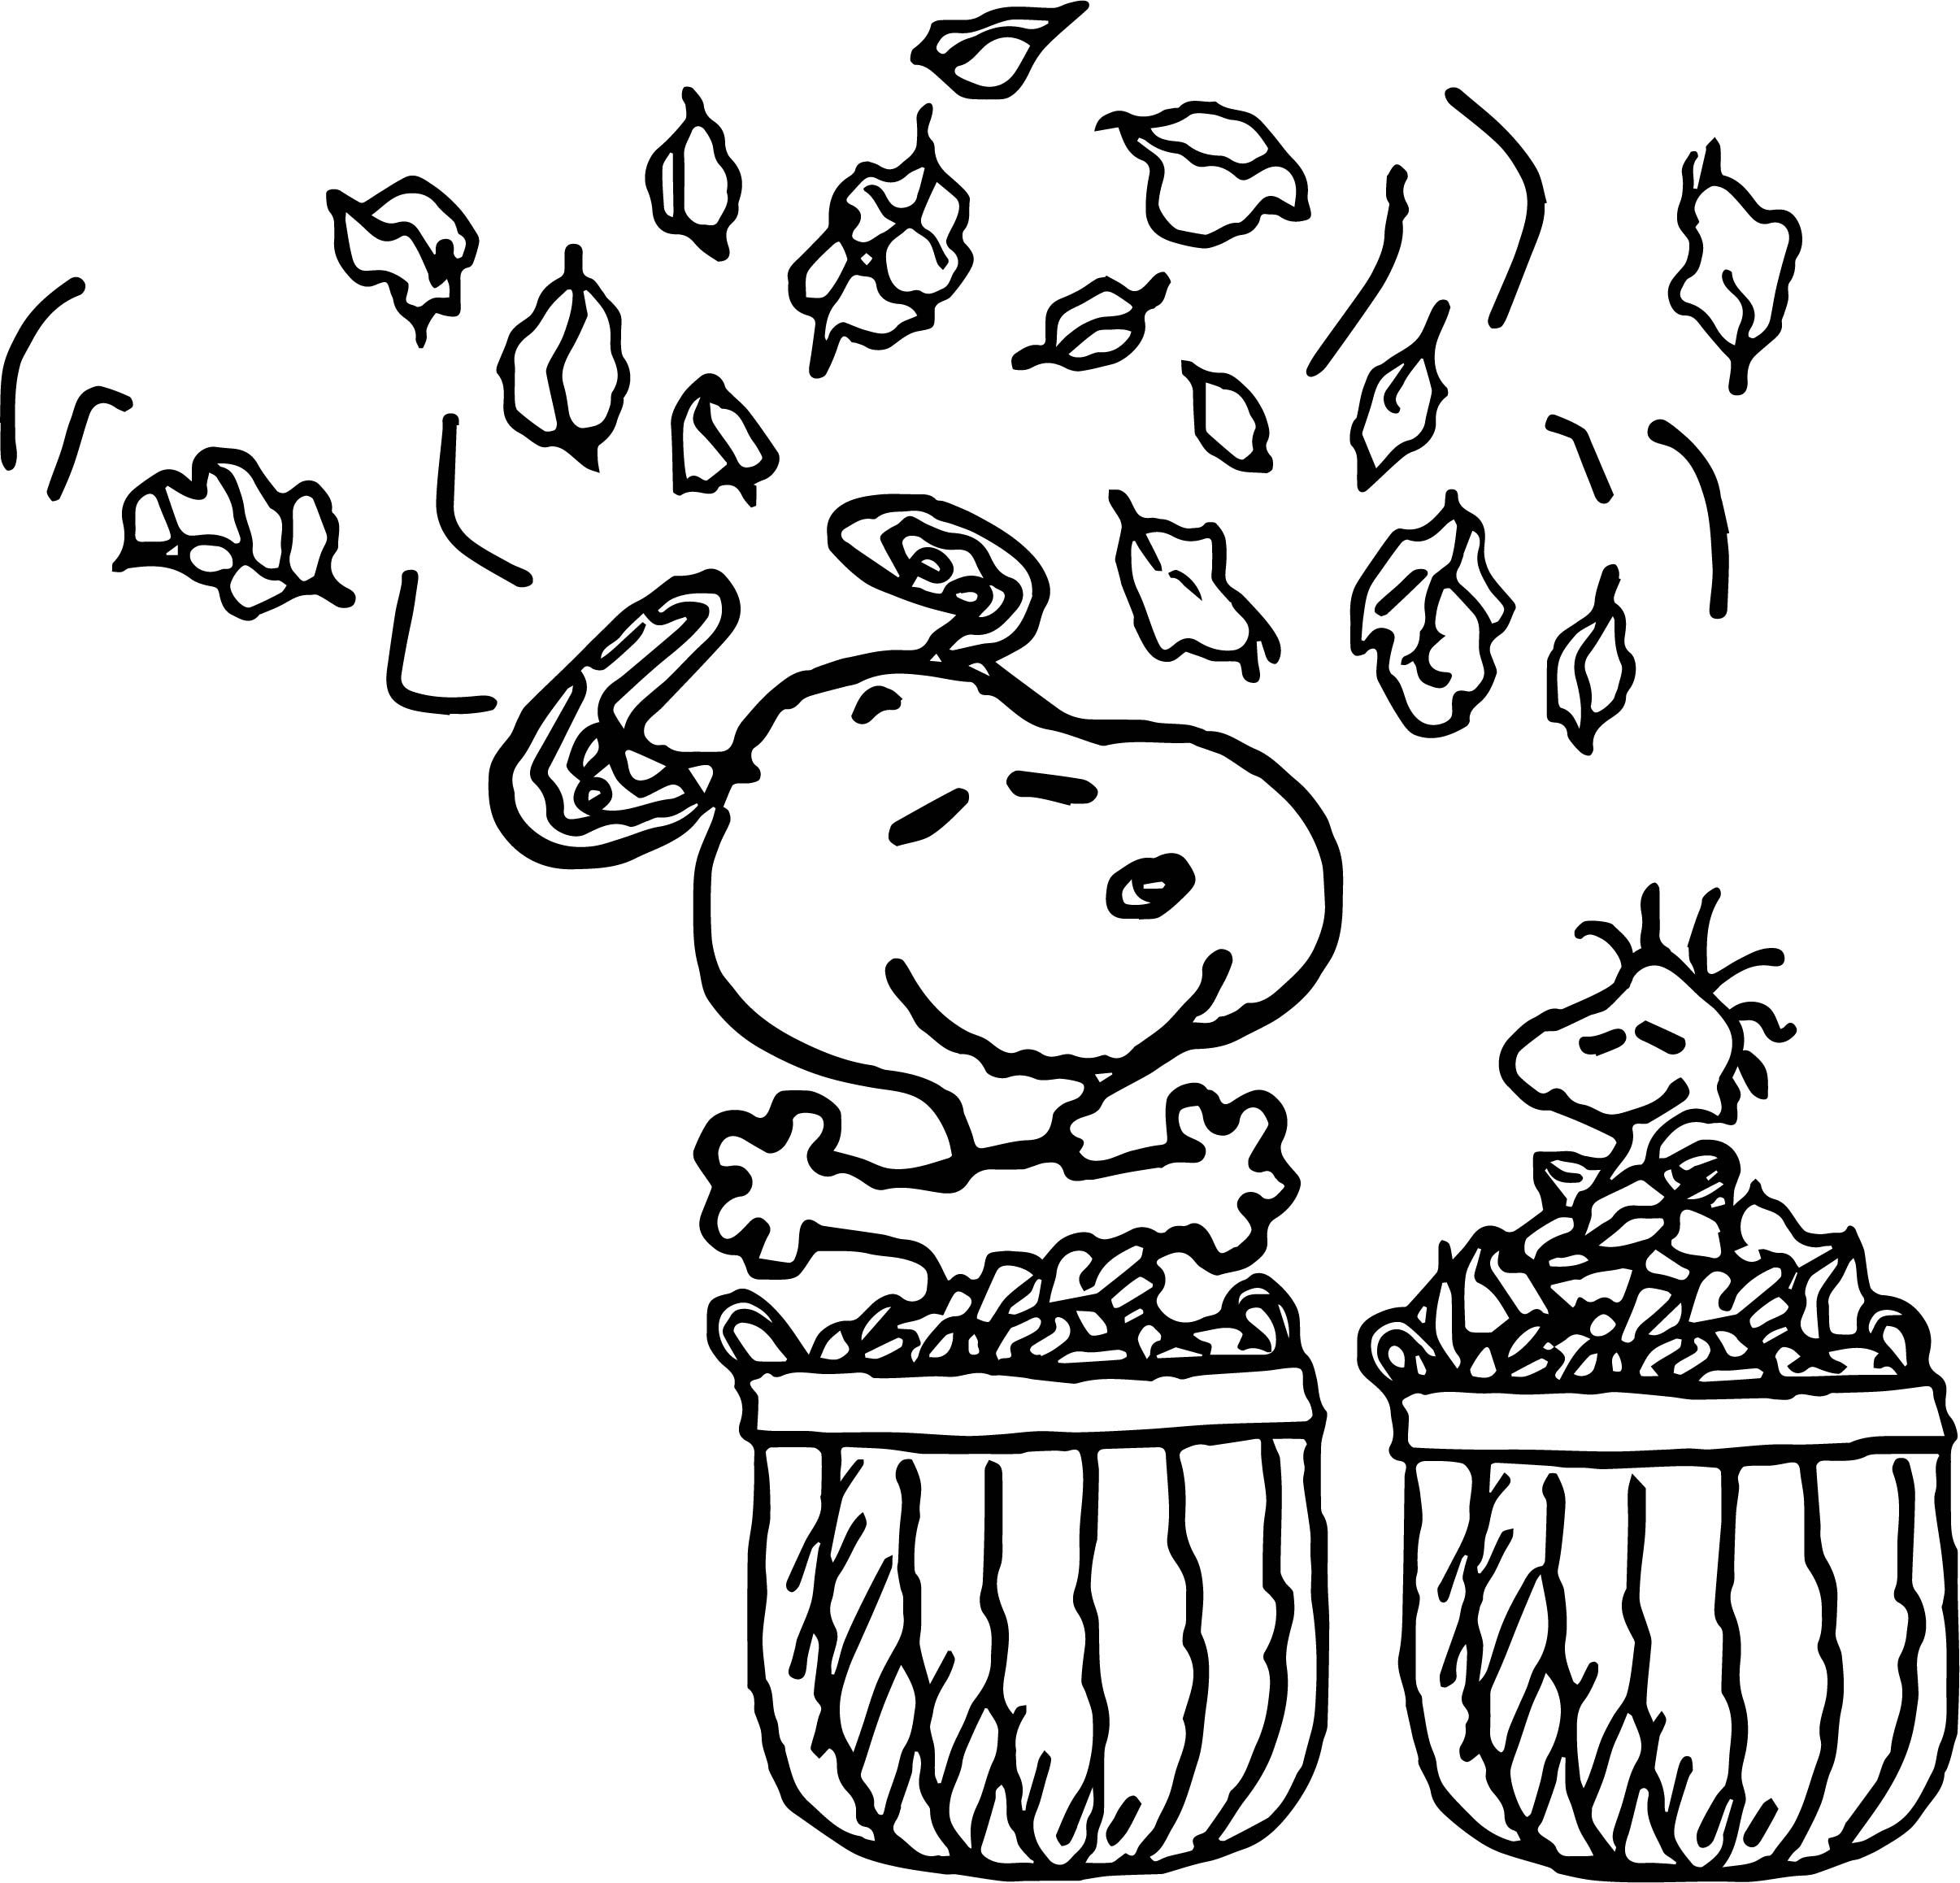 21 Awesome Image Of Fall Leaves Coloring Pages Entitlementtrap Com Snoopy Coloring Pages Fall Coloring Sheets Fall Coloring Pages